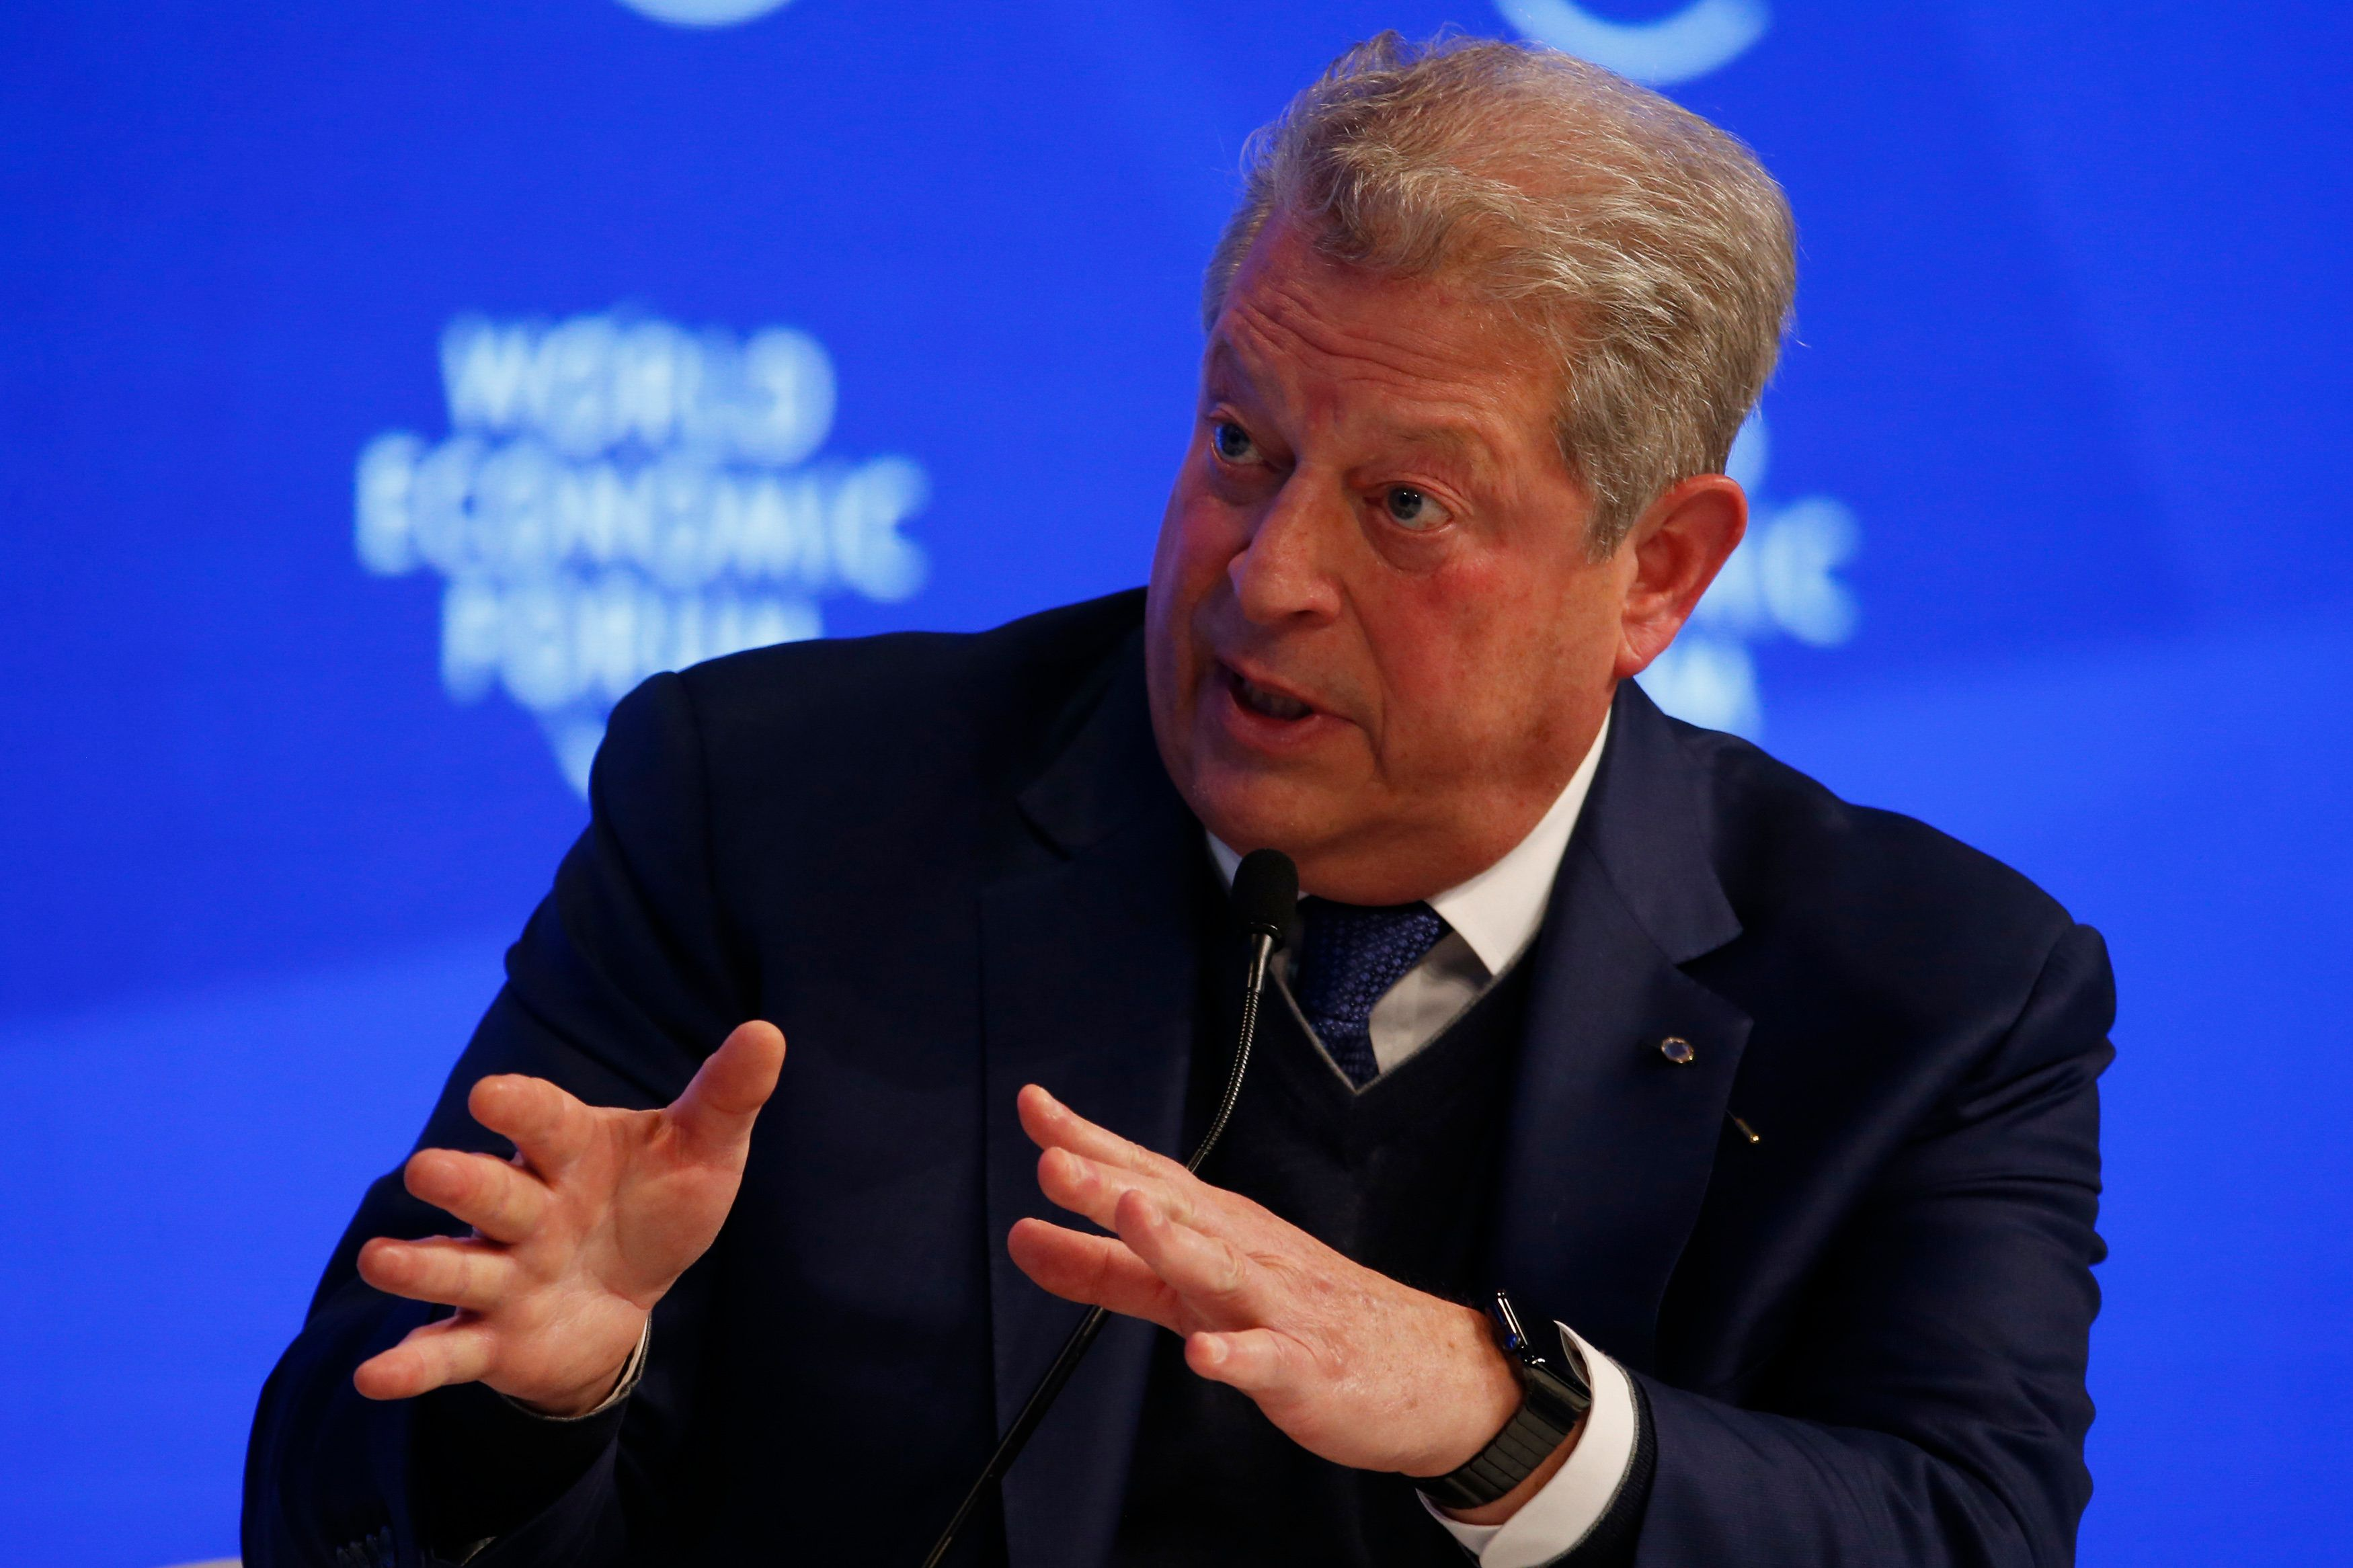 Former U.S. Vice President Al Gore, attends the annual meeting of the World Economic Forum (WEF) in Davos, Switzerland, January 18, 2017. REUTERS/Ruben Sprich